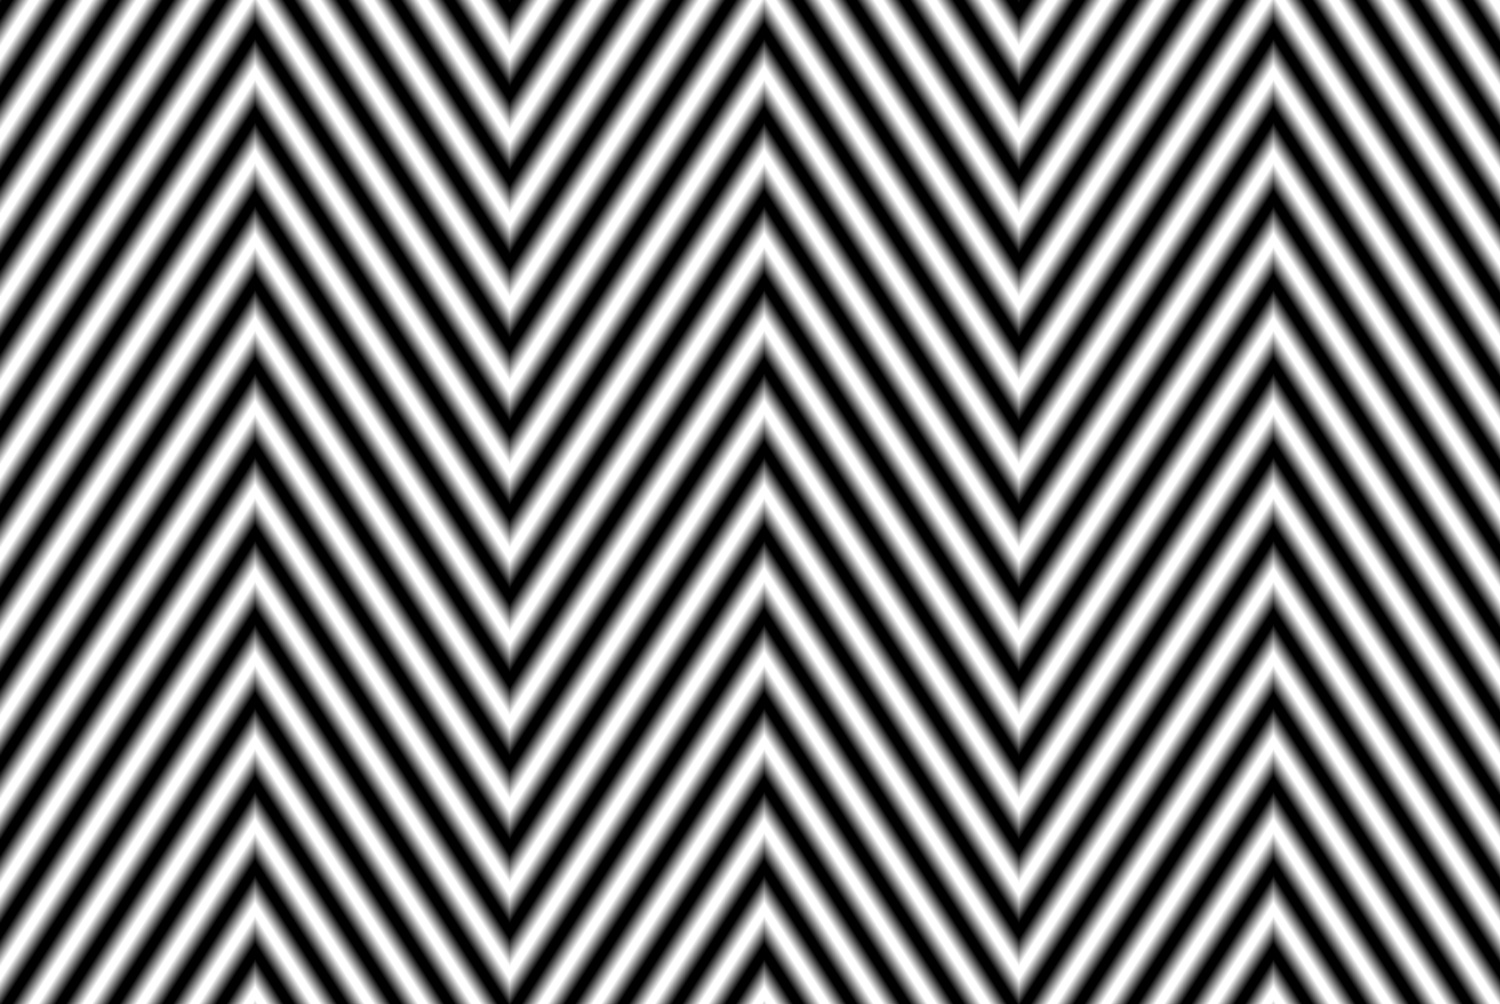 A black and white zig-zag pattern to be used as a displacement map in Photoshop